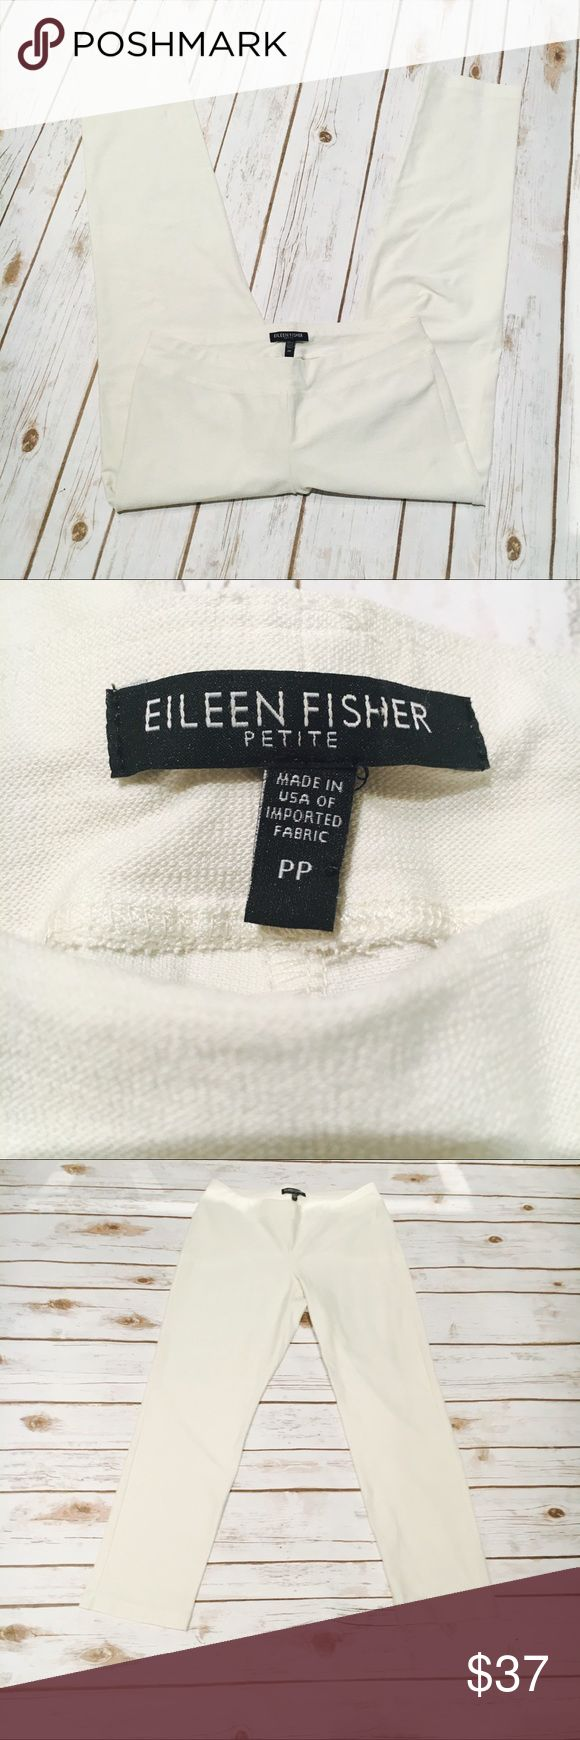 Eileen Fisher White Petite Legging Pant Incredible feeling ponte pant/legging from Eileen Fisher in a PP petite (fits like a 2/4p) . White is in perfect condition with no stains or fame. Elasticized waistband, pull on style. Eileen Fisher Pants Ankle & Cropped